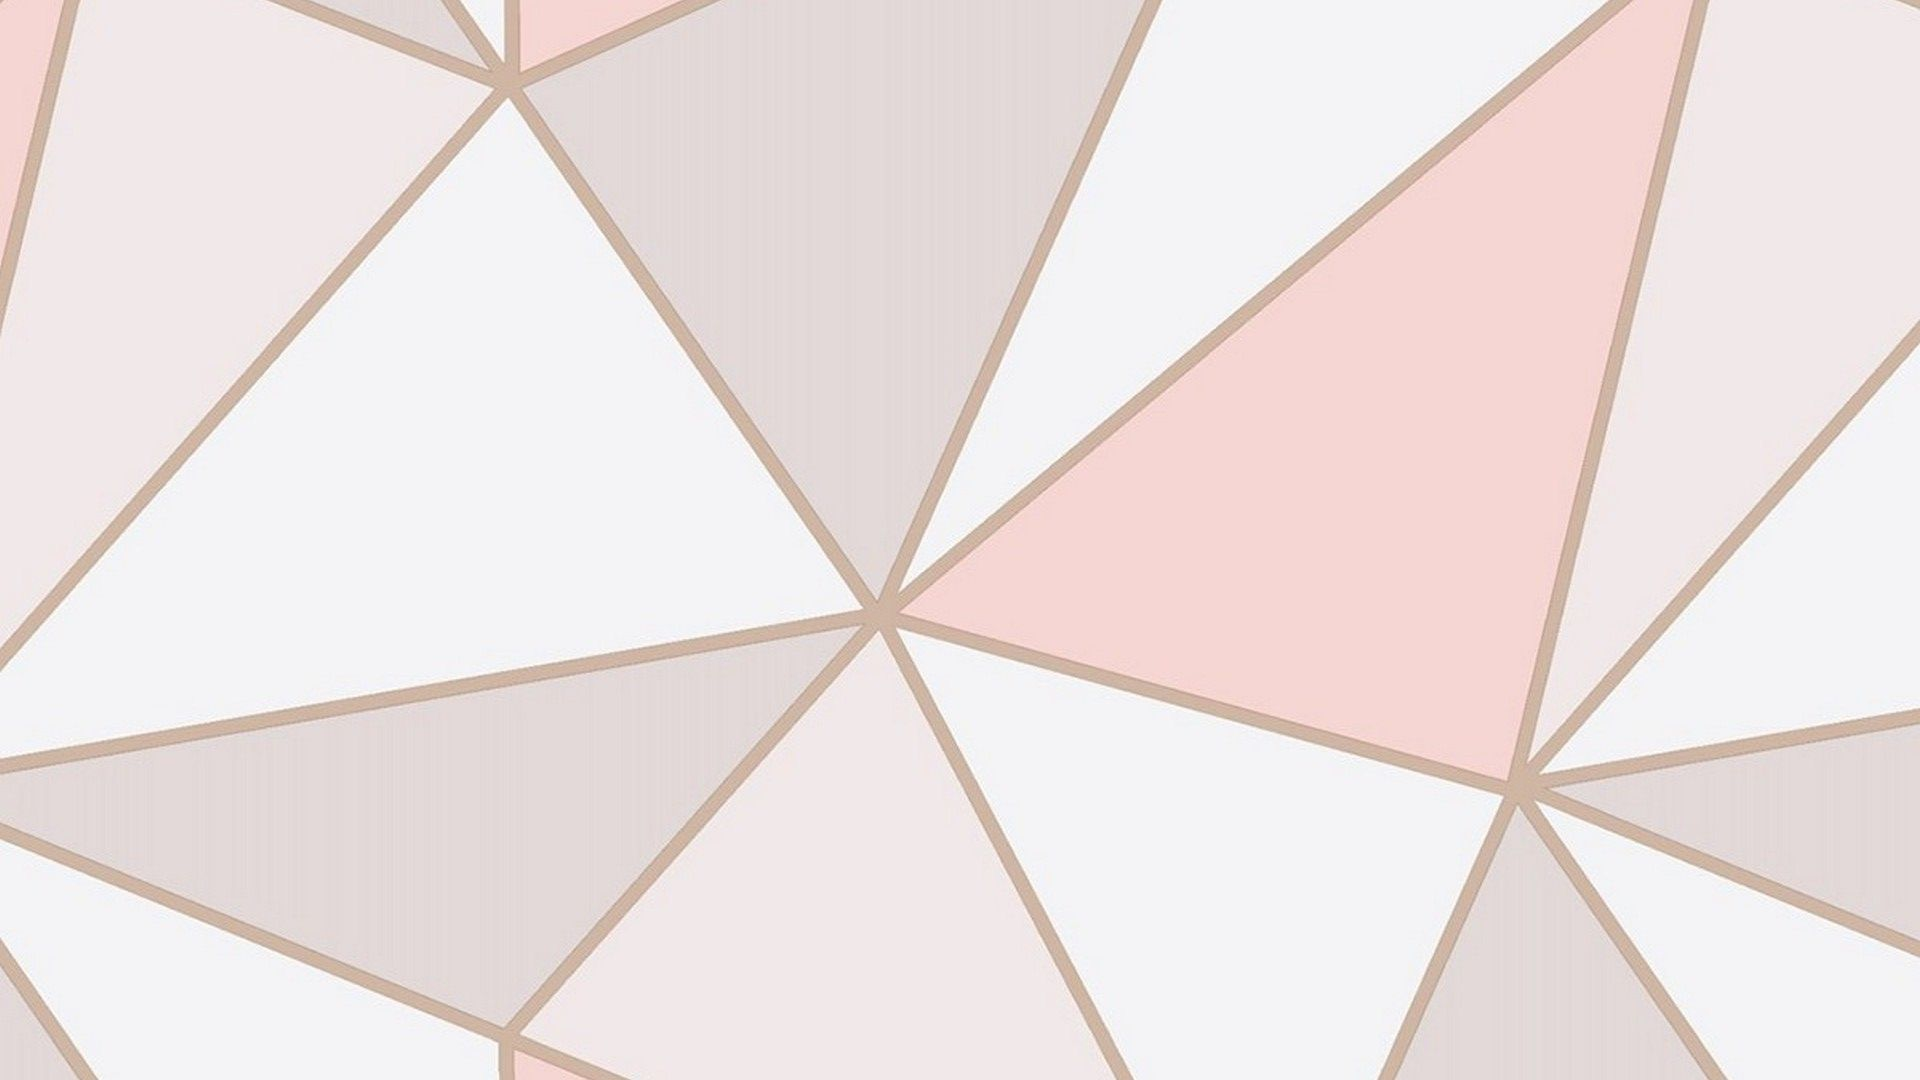 Wallpaper Rose Gold Marble Desktop Best Hd Wallpapers Rose Gold Marble Rose Gold Wallpaper Rose Gold Marble Wallpaper